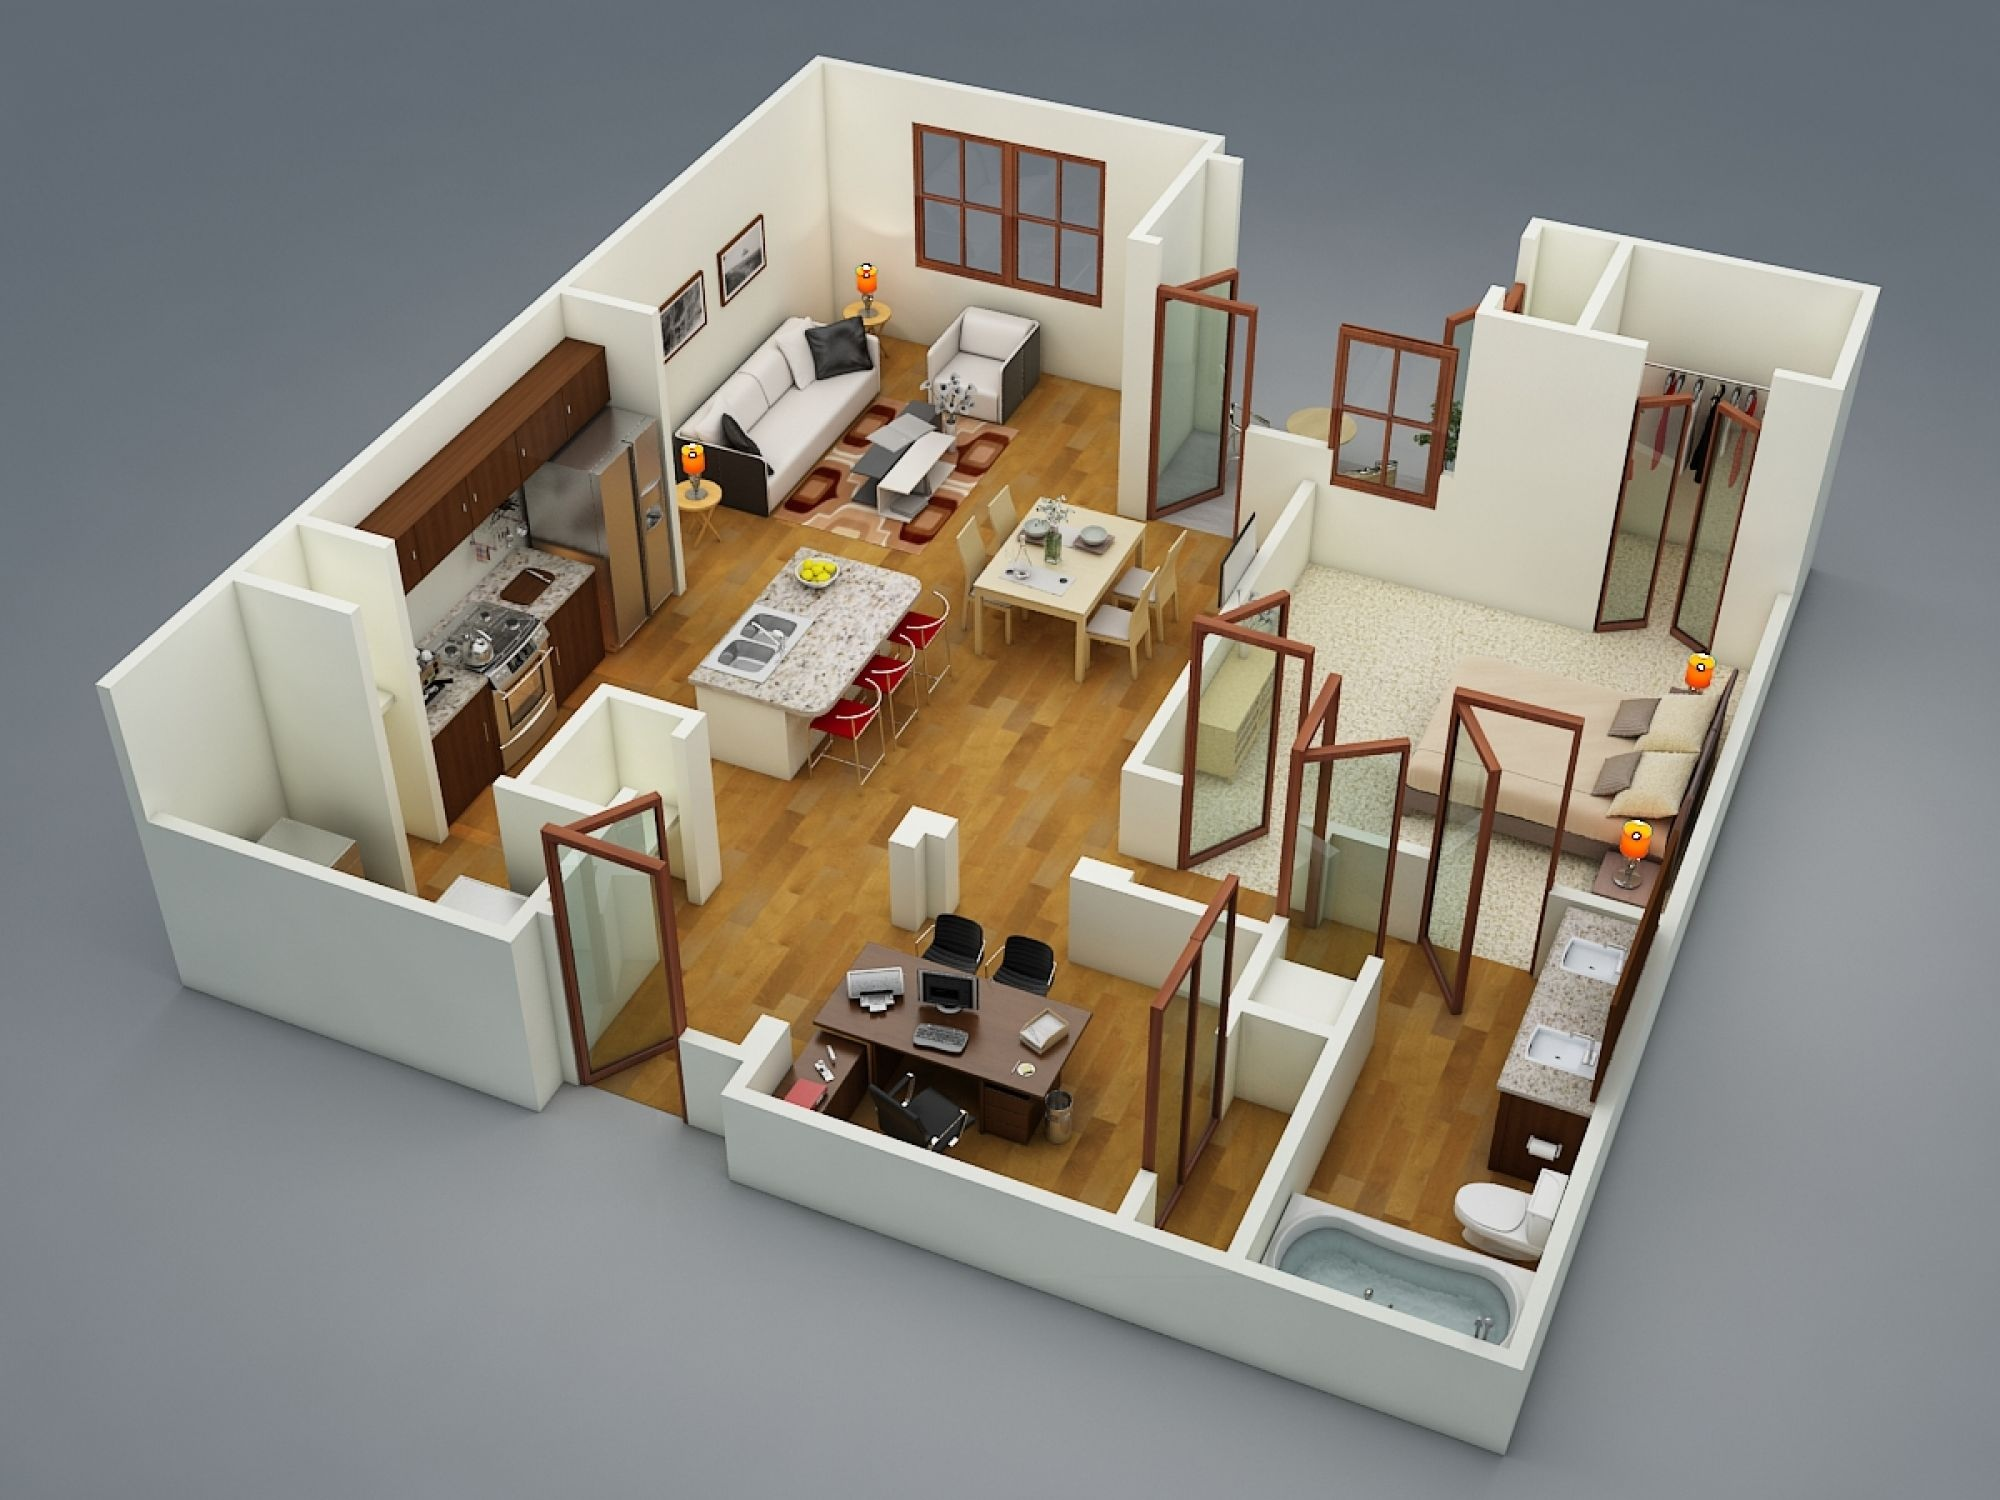 1 bedroom apartment house plans Apartment house plans